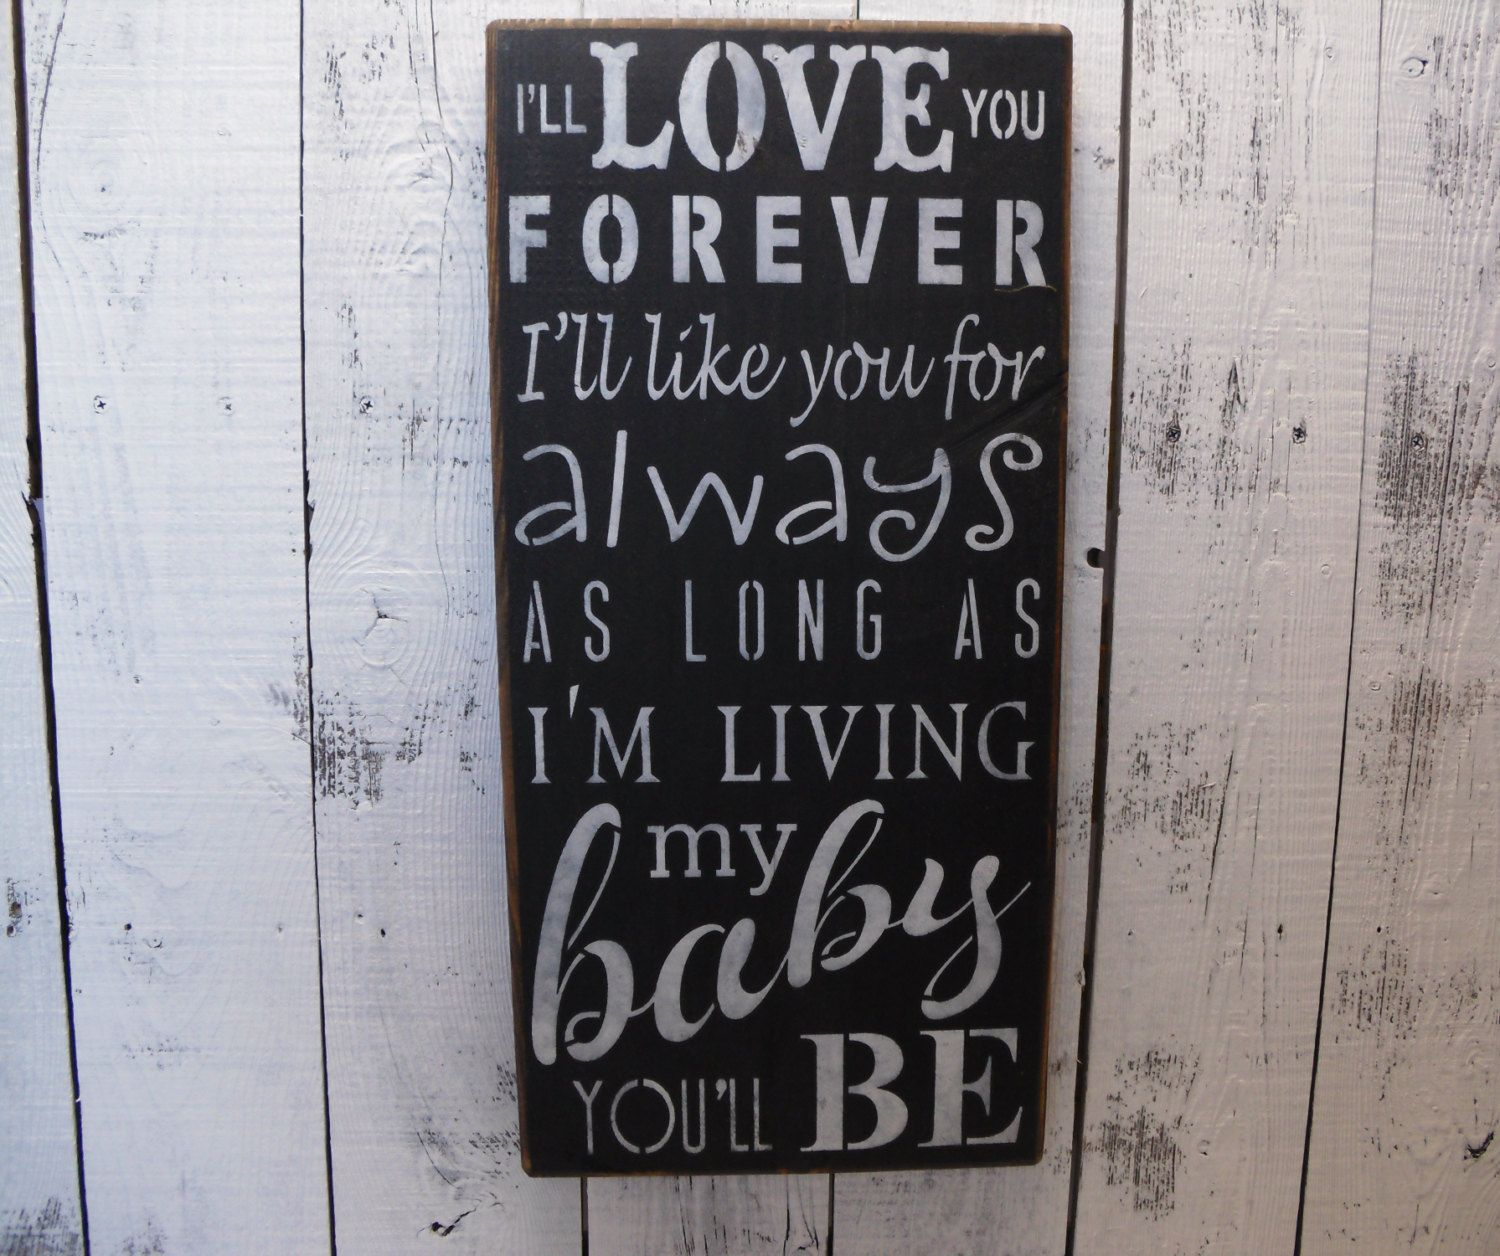 I Ll Love You Forever Quote Wooden Sign I'll Love You Forever I'll Like You For Always As